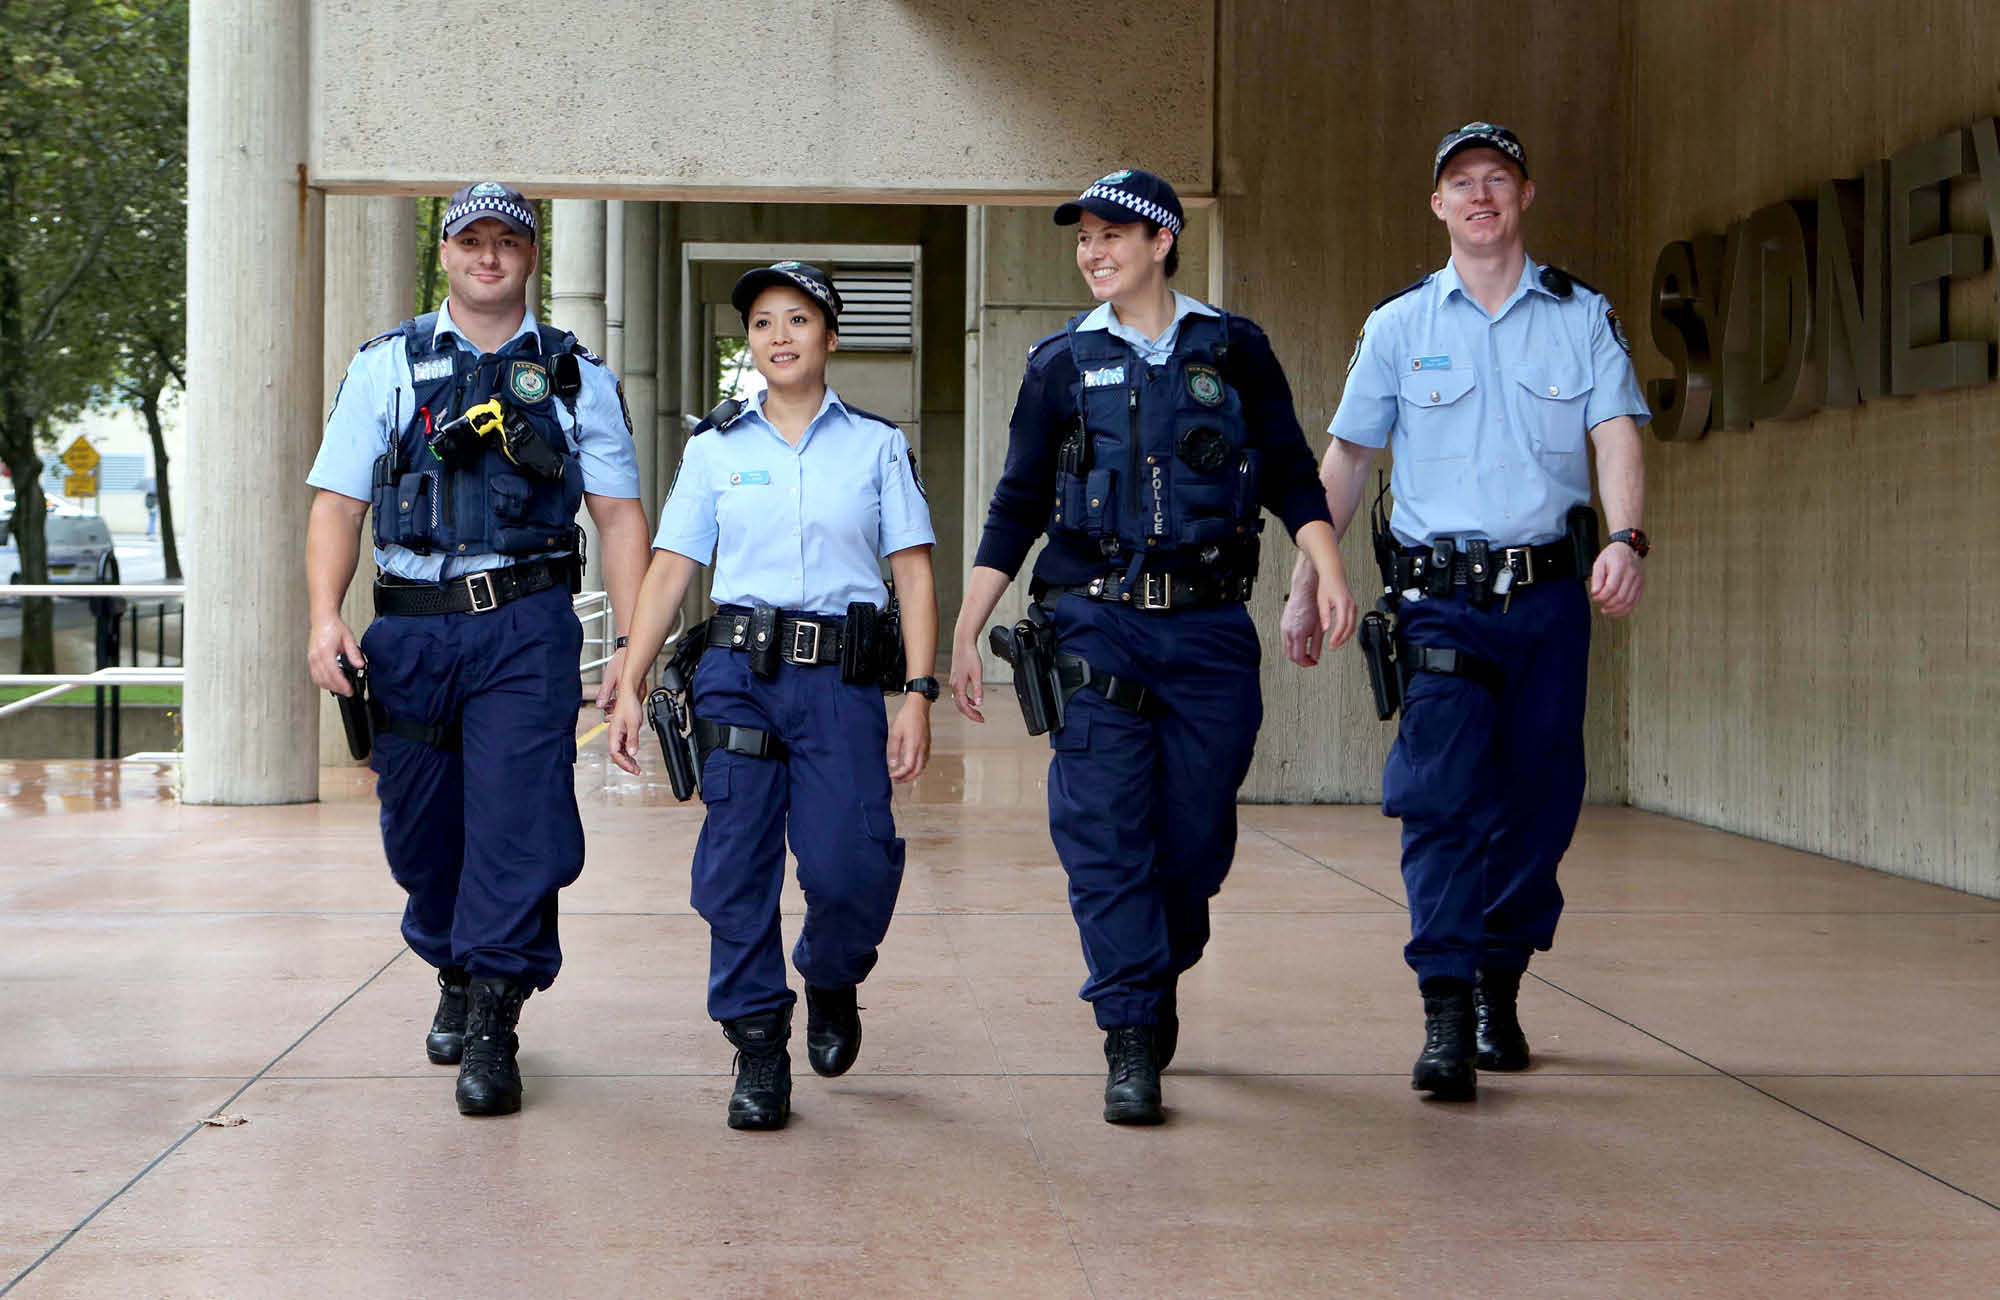 Bachelor of Public Safety and Security